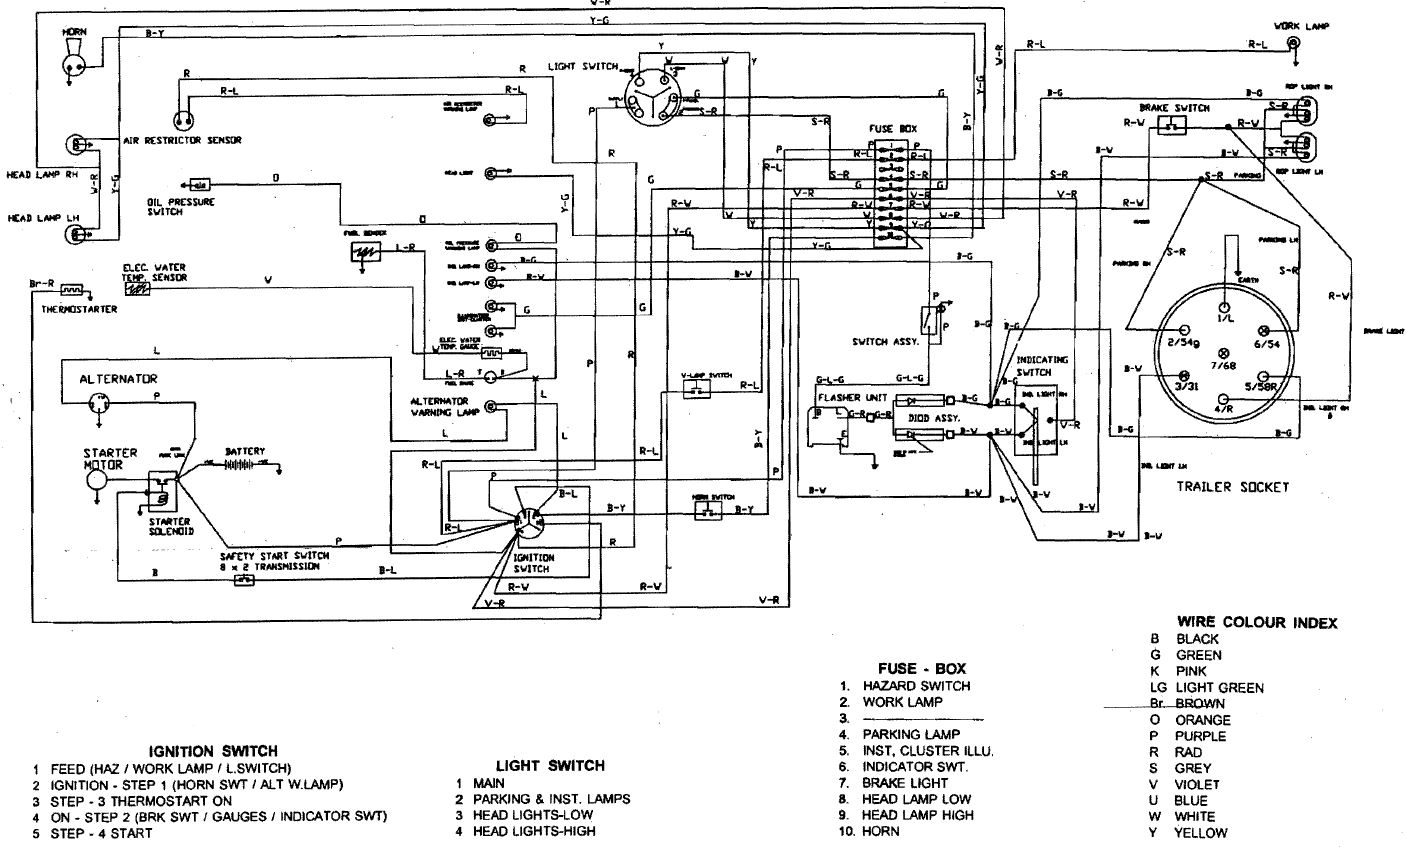 Ignition switch wiring diagram TractorByNet